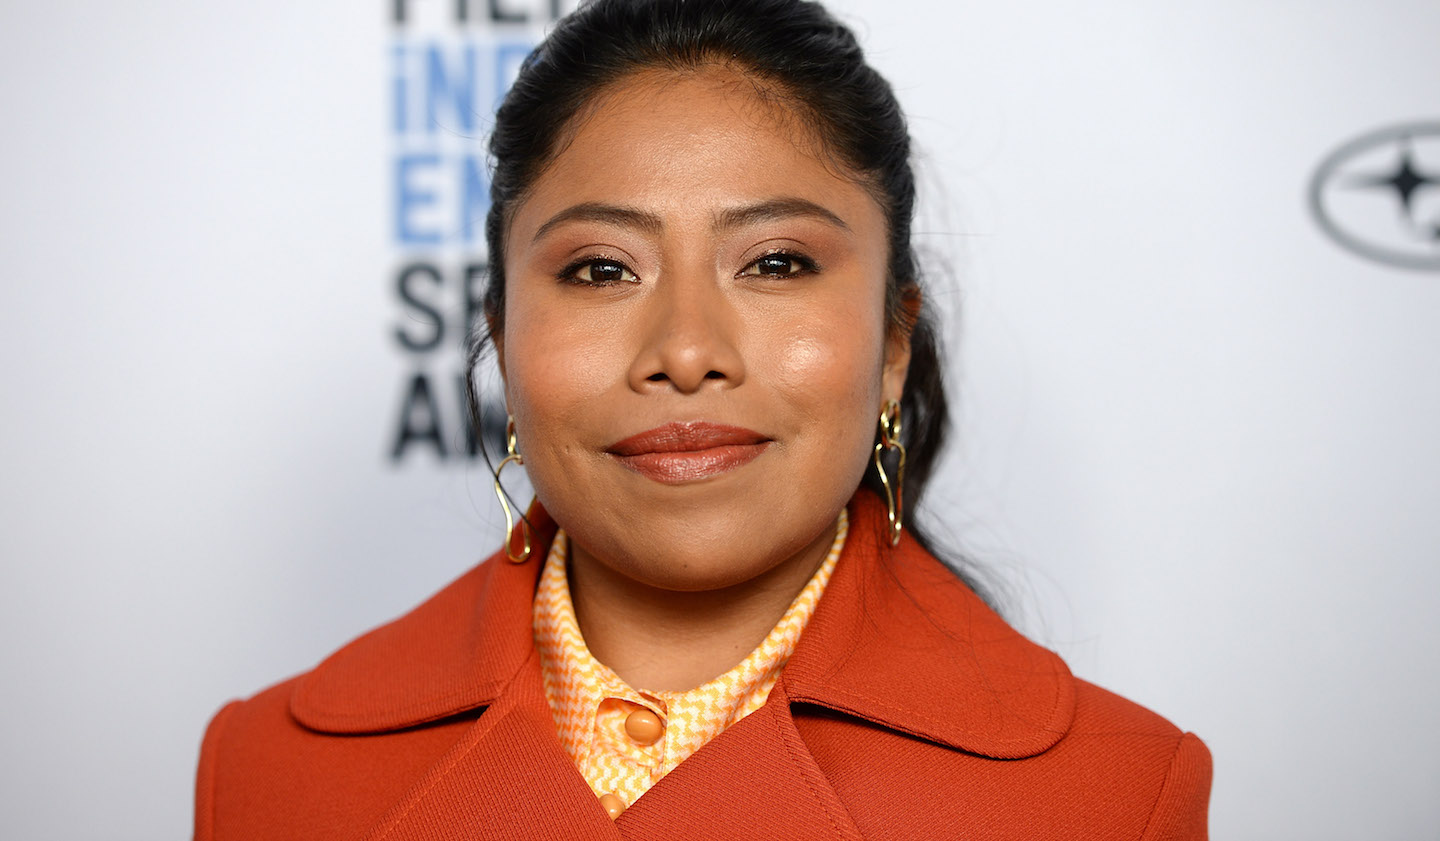 Yalitza Aparicio Becomes First Indigenous Woman Nominated For A